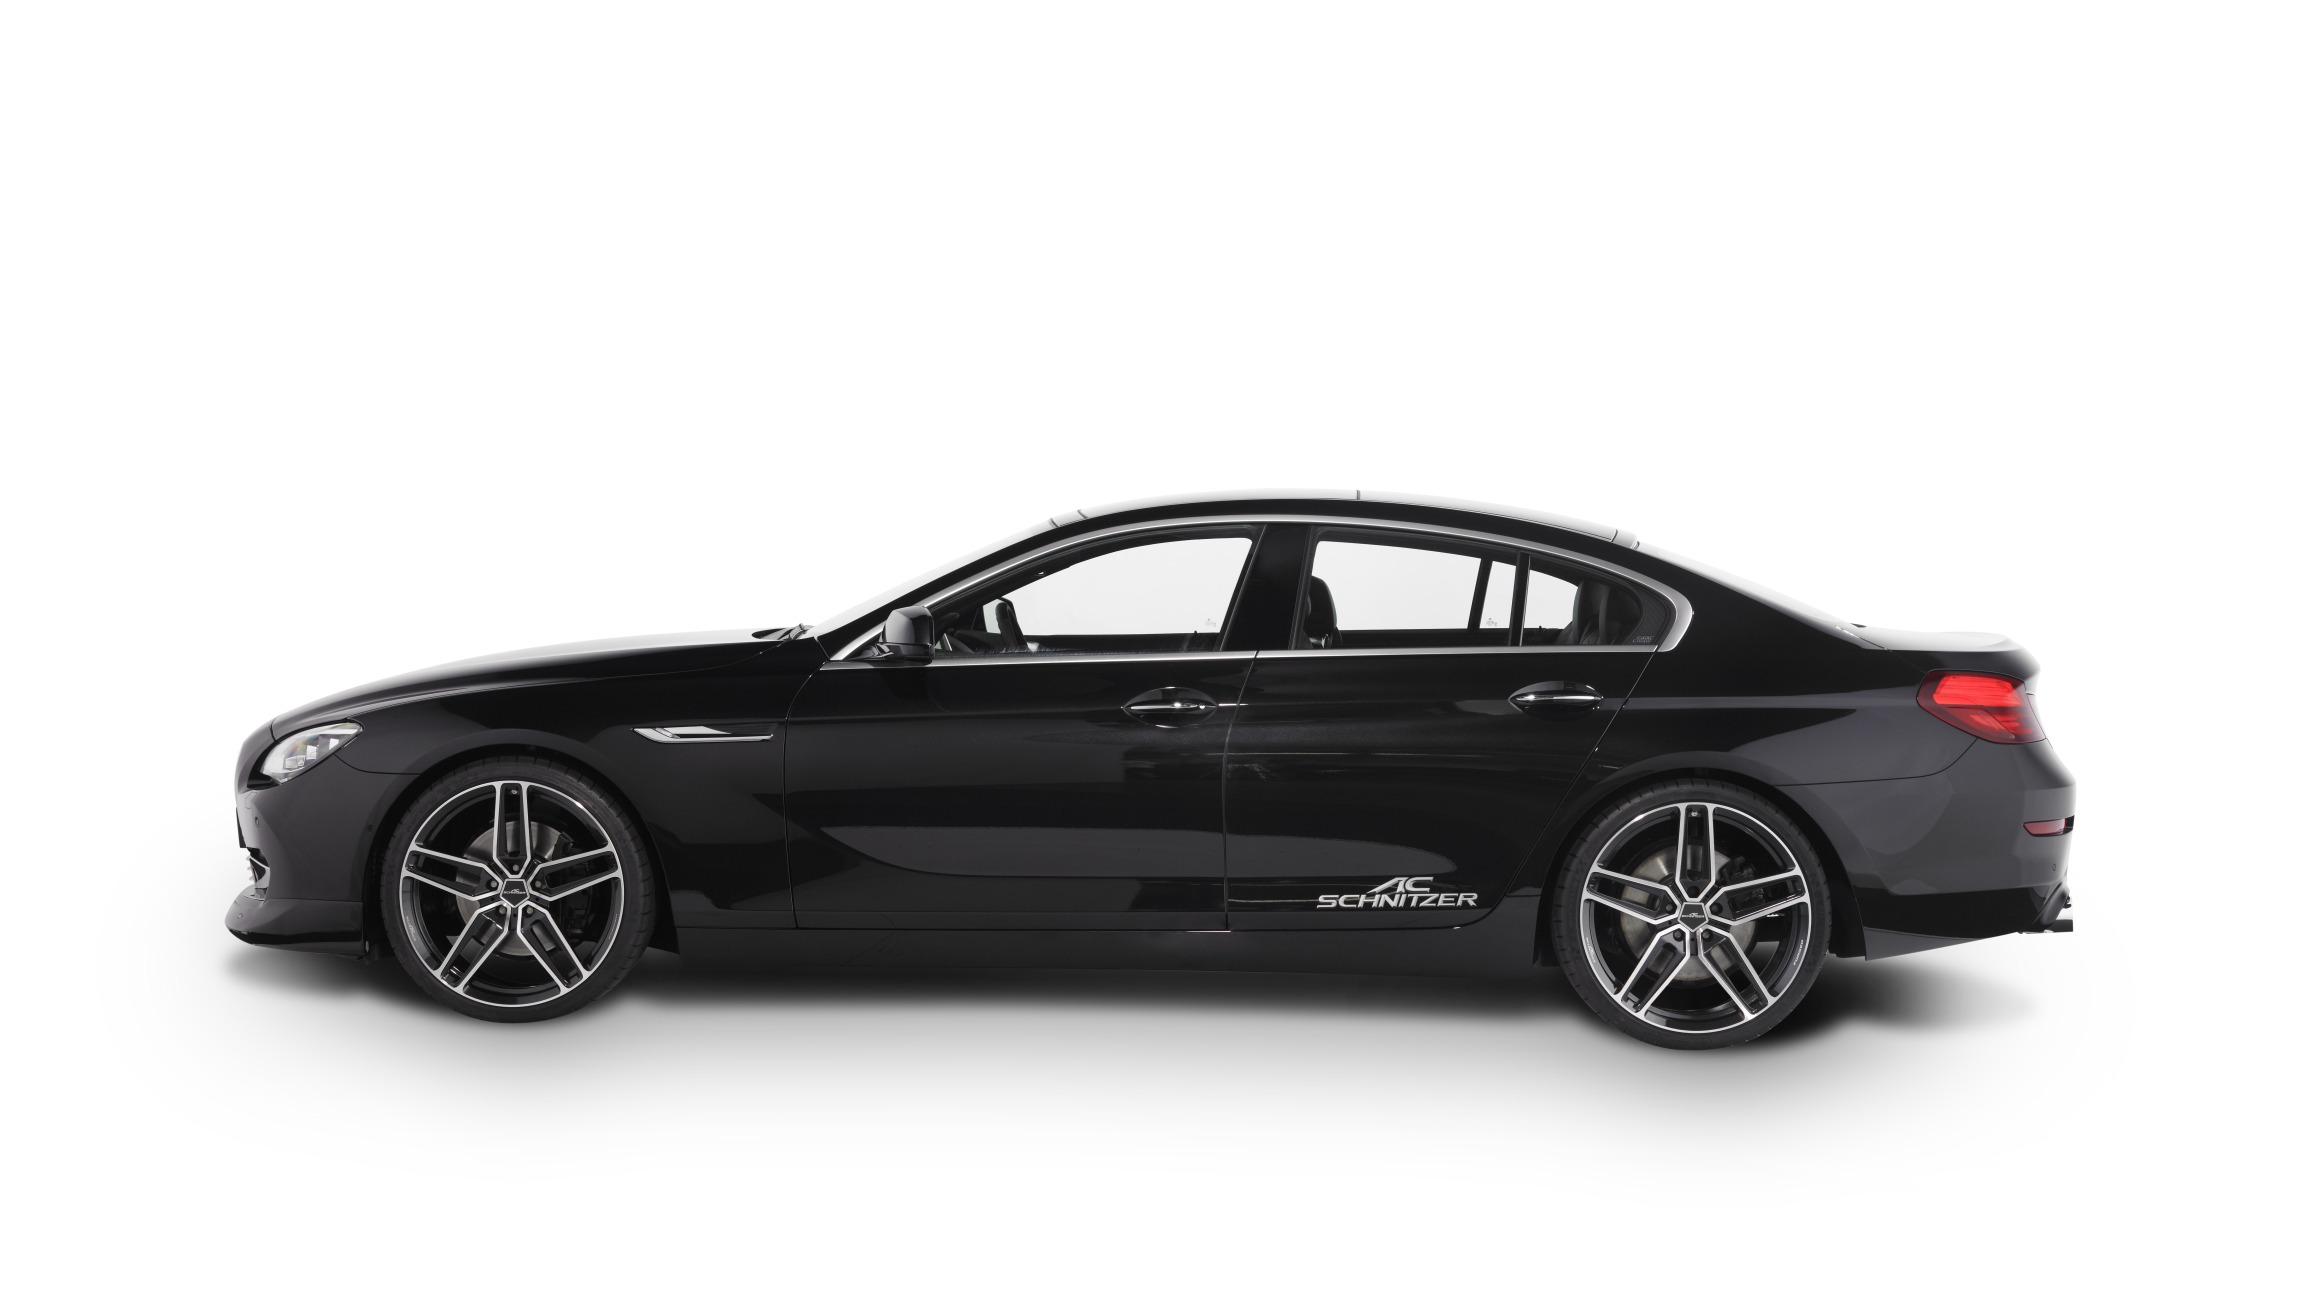 2013 BMW 6 series Gran Coupe By AC Schnitzer